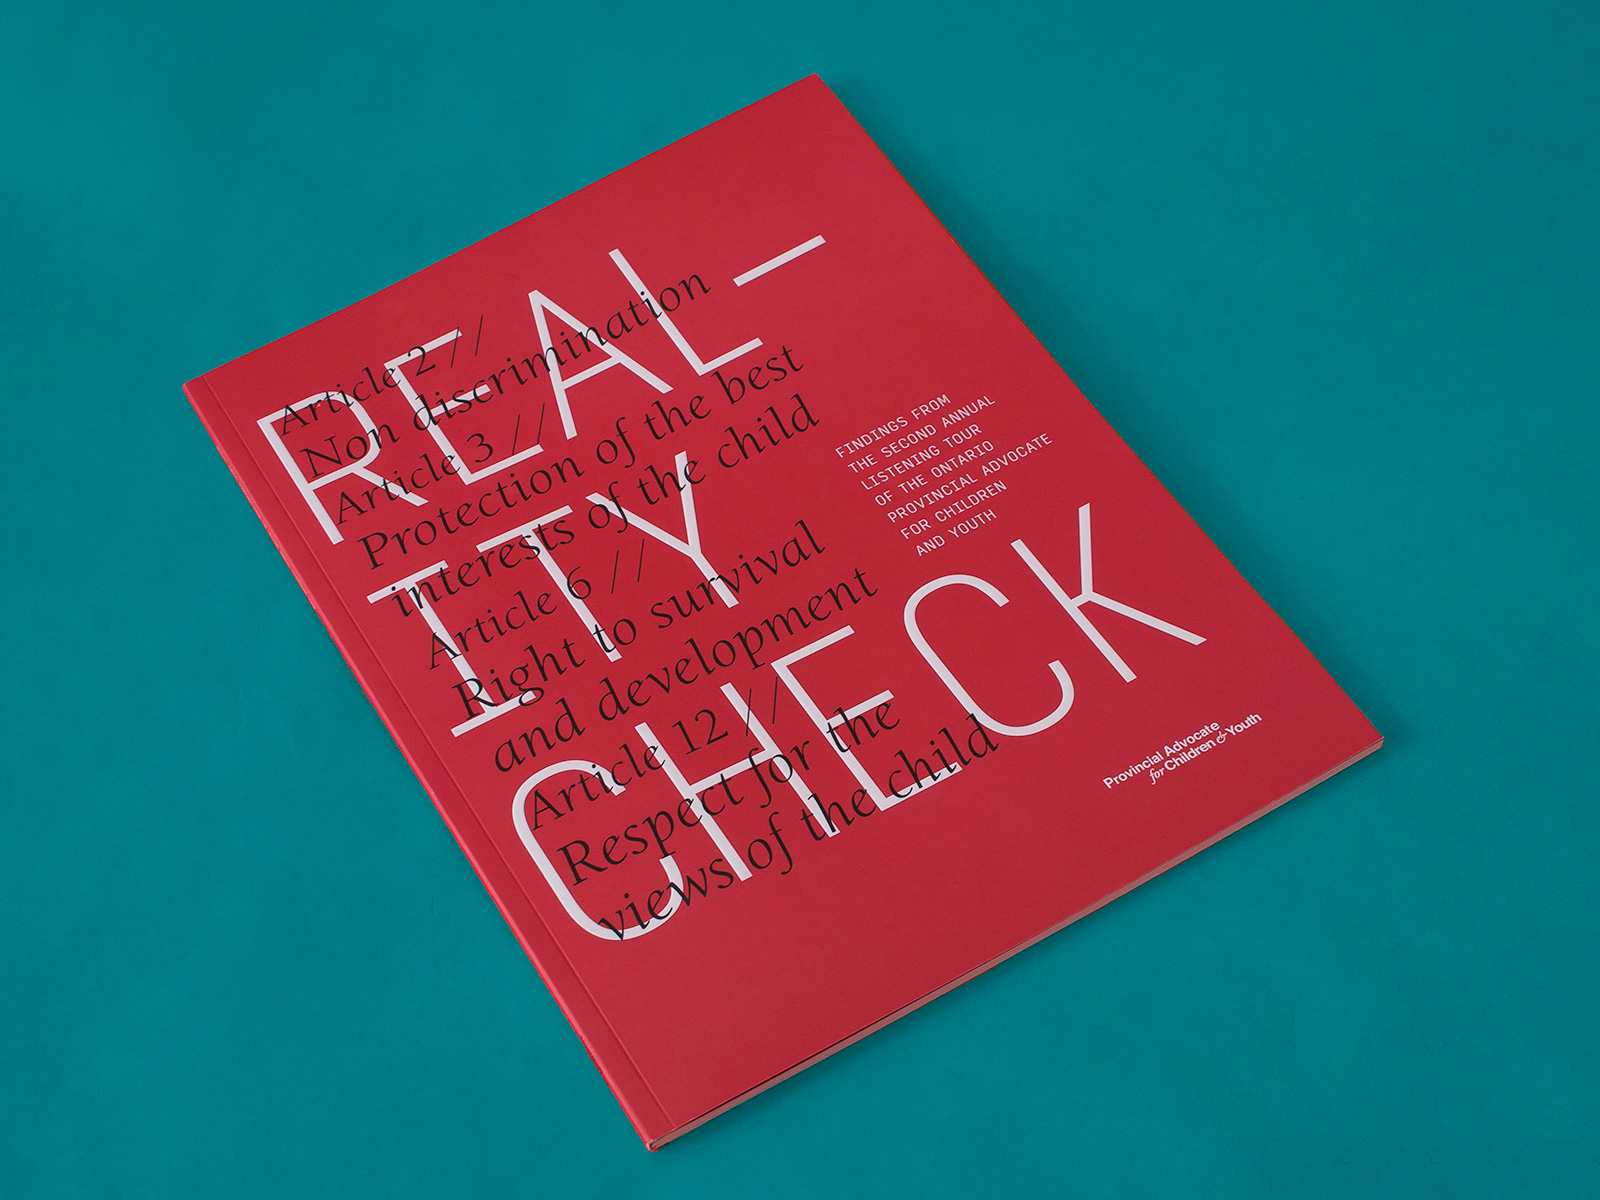 A photograph of the Listening Tour Report cover taken on a teal background. The cover background is printed red, there are lines of black italic text that span over the large white capital letters of the title. This takes up most of the page. There is additional text in much smaller font at both the middle and the bottom of the right side of the cover.